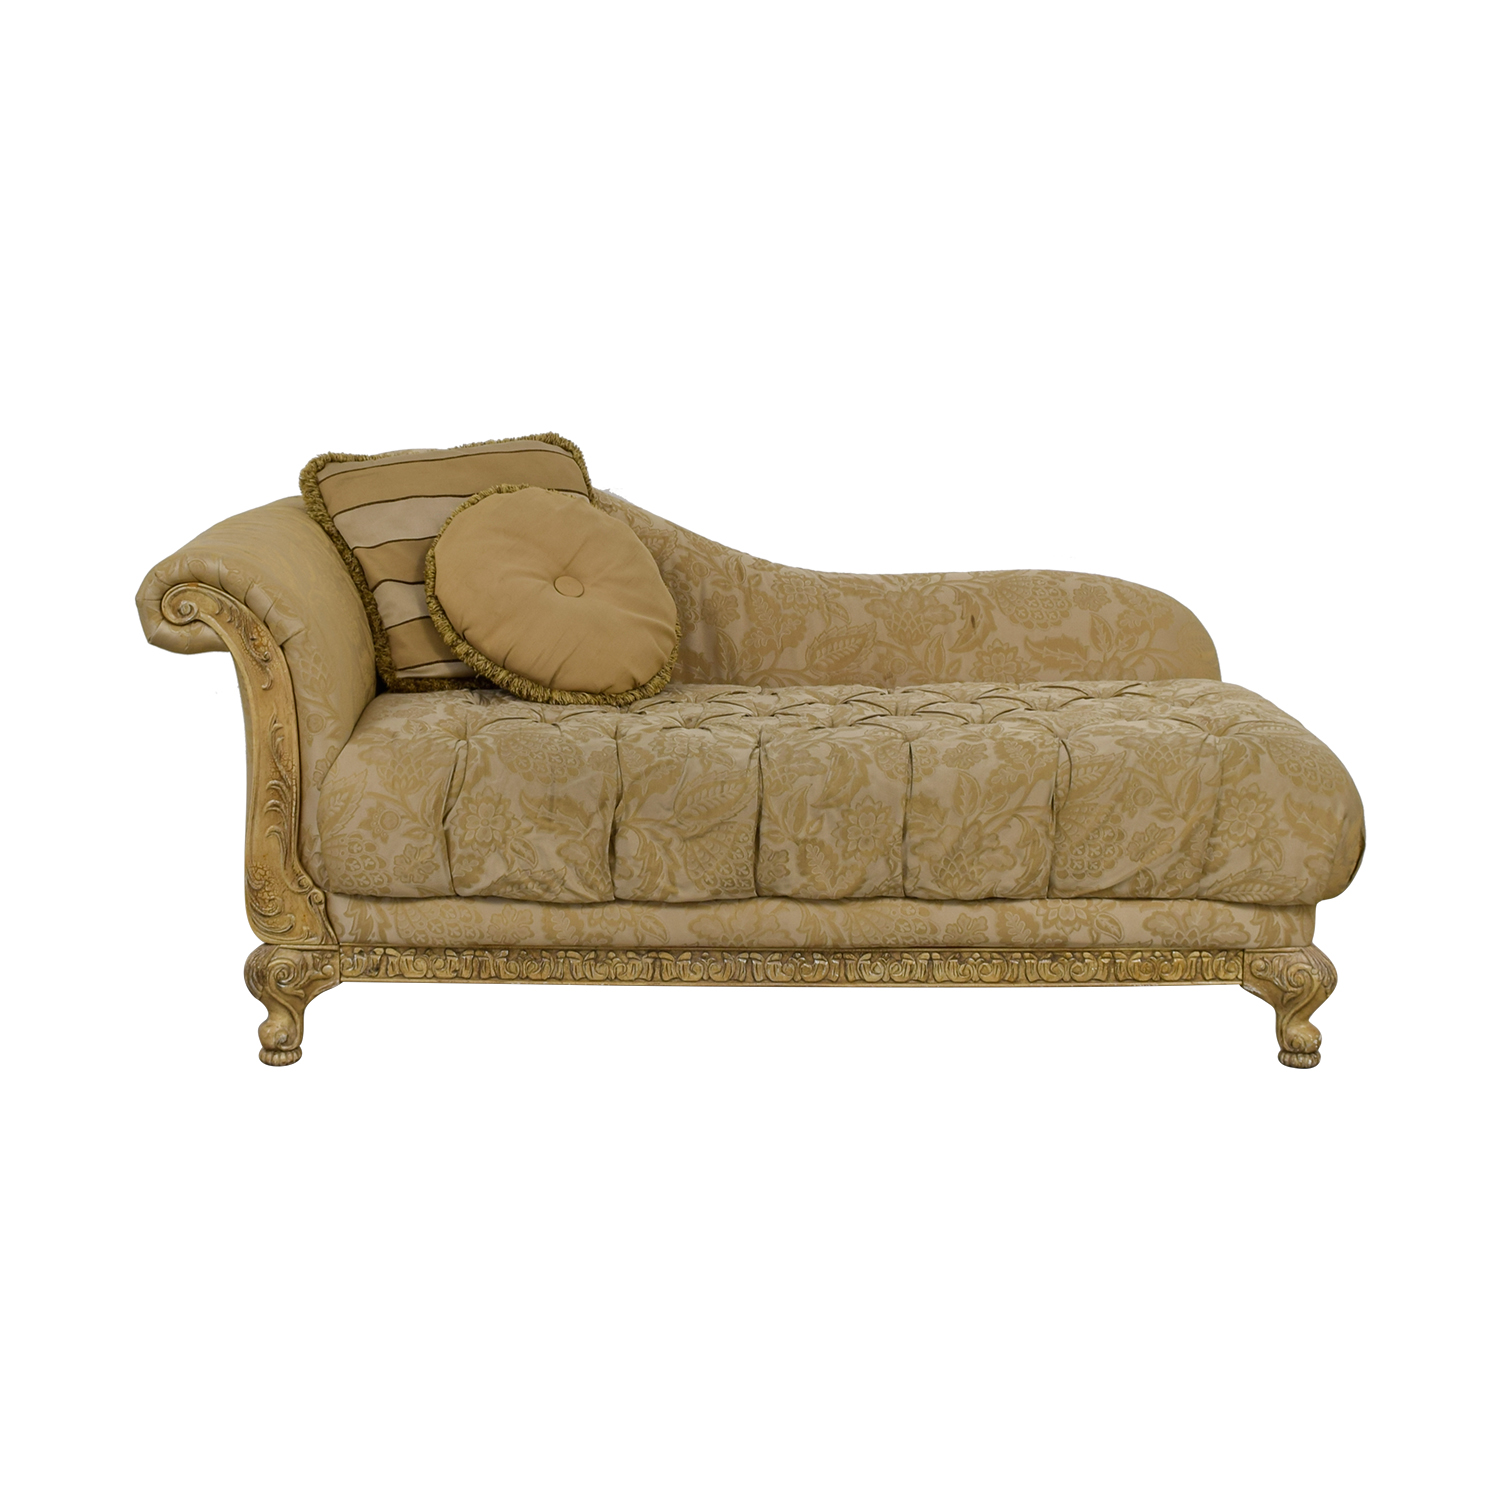 Schnadig Schnadig Beige Jacquard Tufted Chaise Lounge for sale